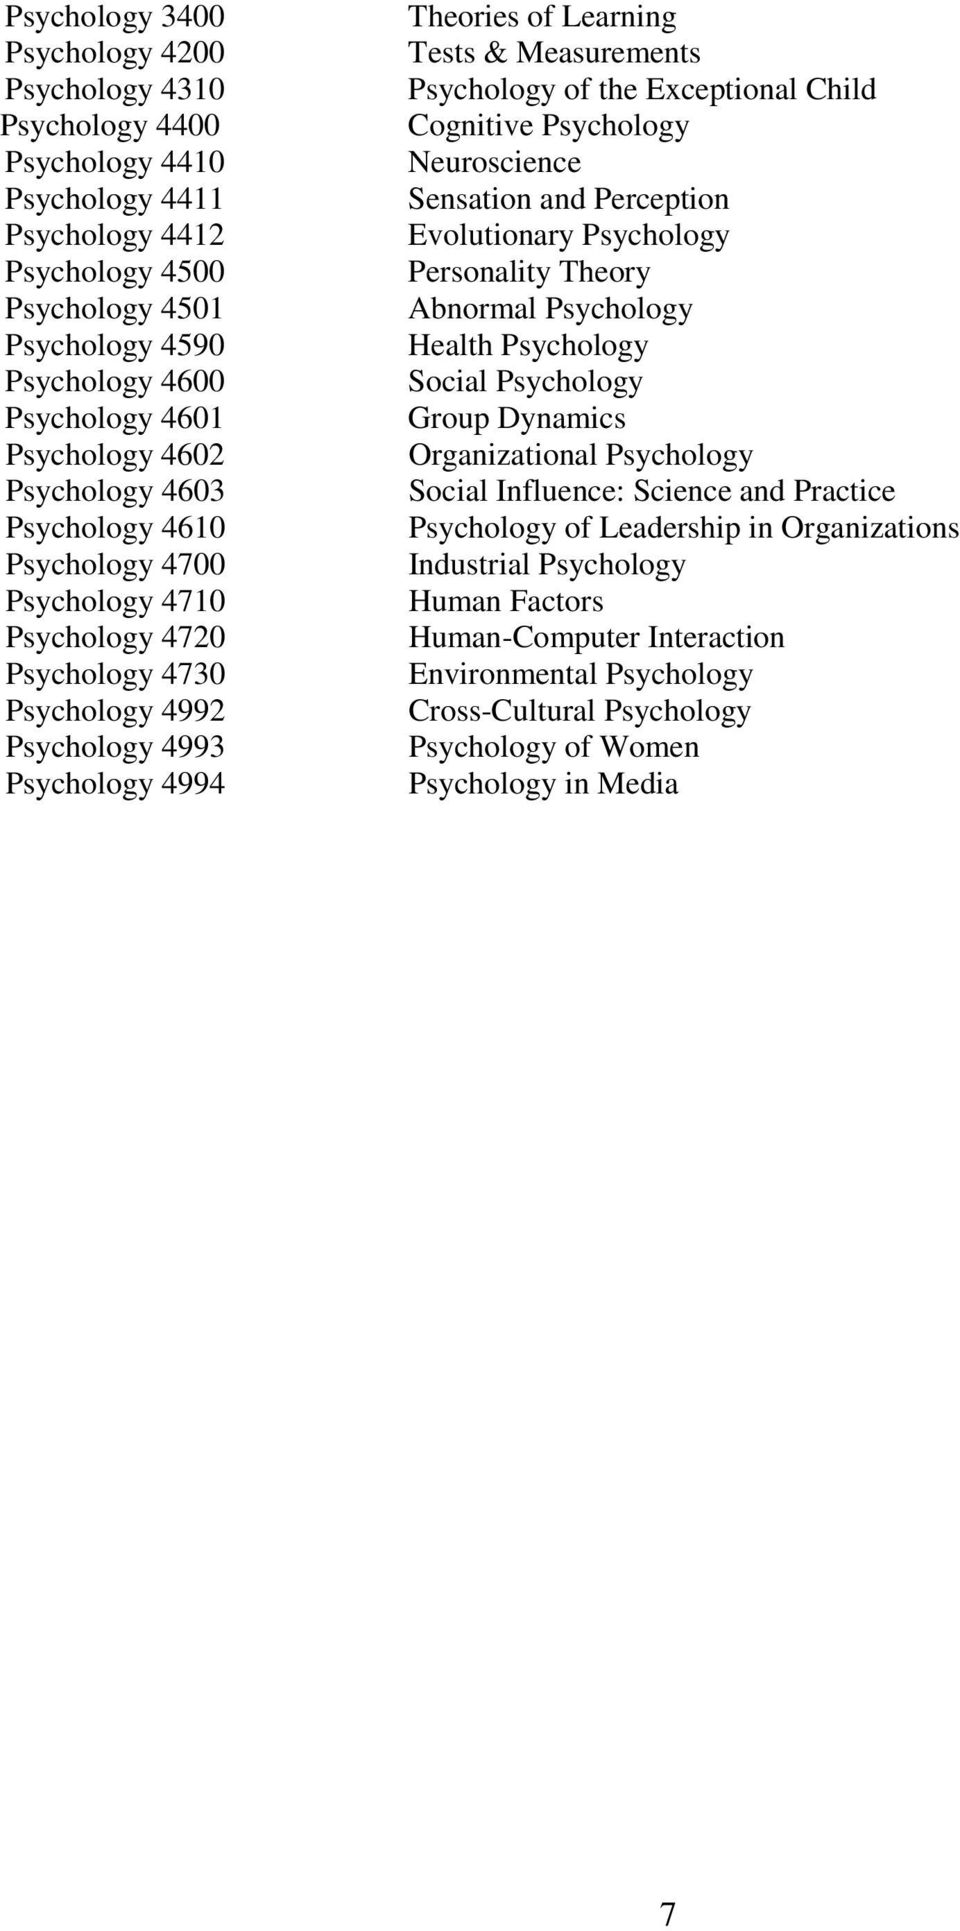 Measurements Psychology of the Exceptional Child Cognitive Psychology Neuroscience Sensation and Perception Evolutionary Psychology Personality Theory Abnormal Psychology Health Psychology Social